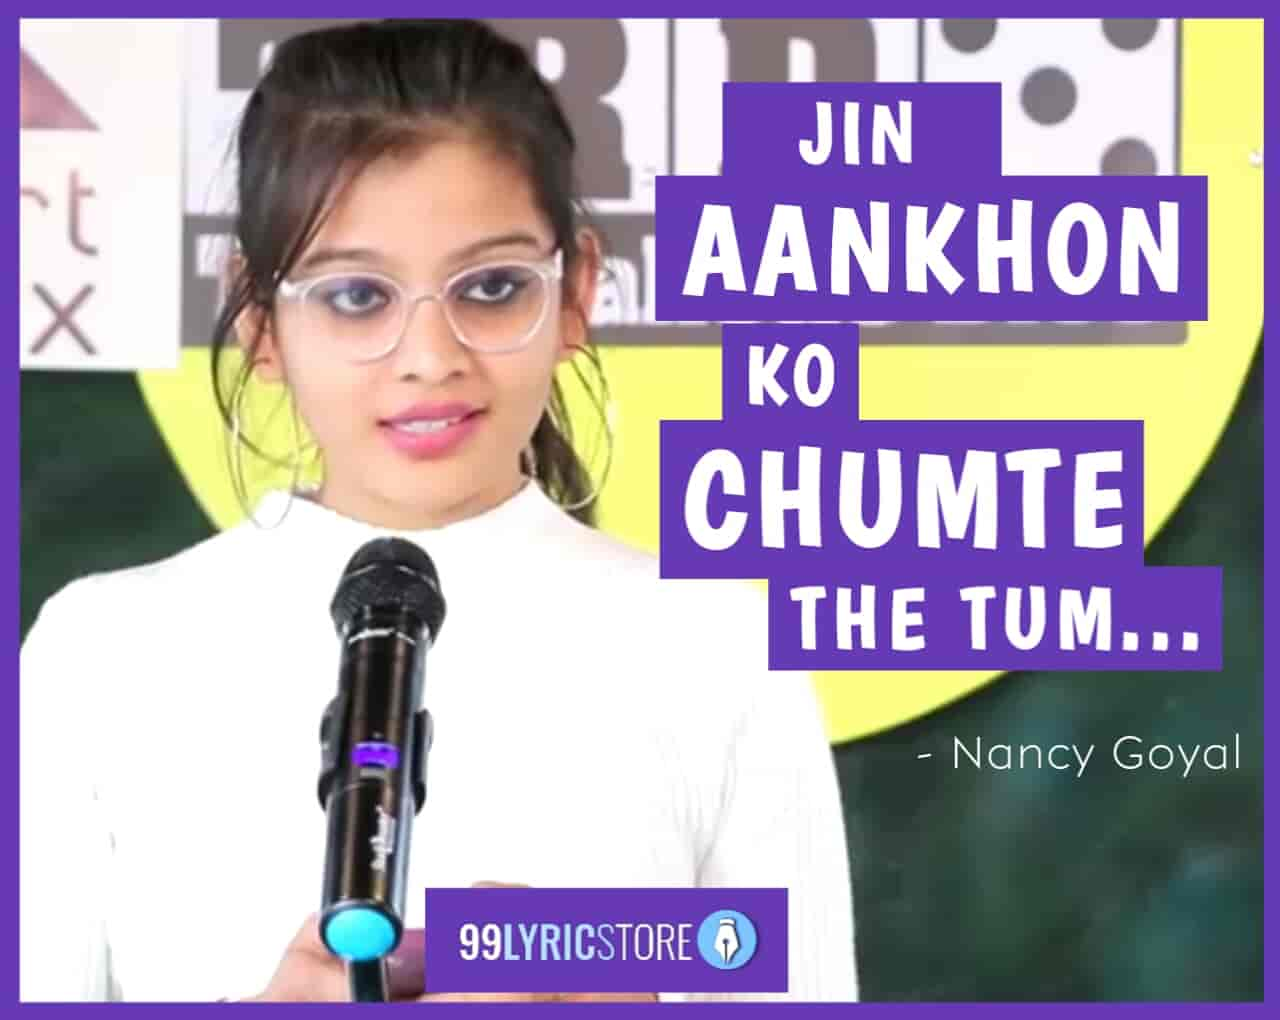 This beautiful love poem 'Jin Aankhon Ko Chumte The Tum' has written and performed by nancy goyal on the stage of The Realistic Dice.